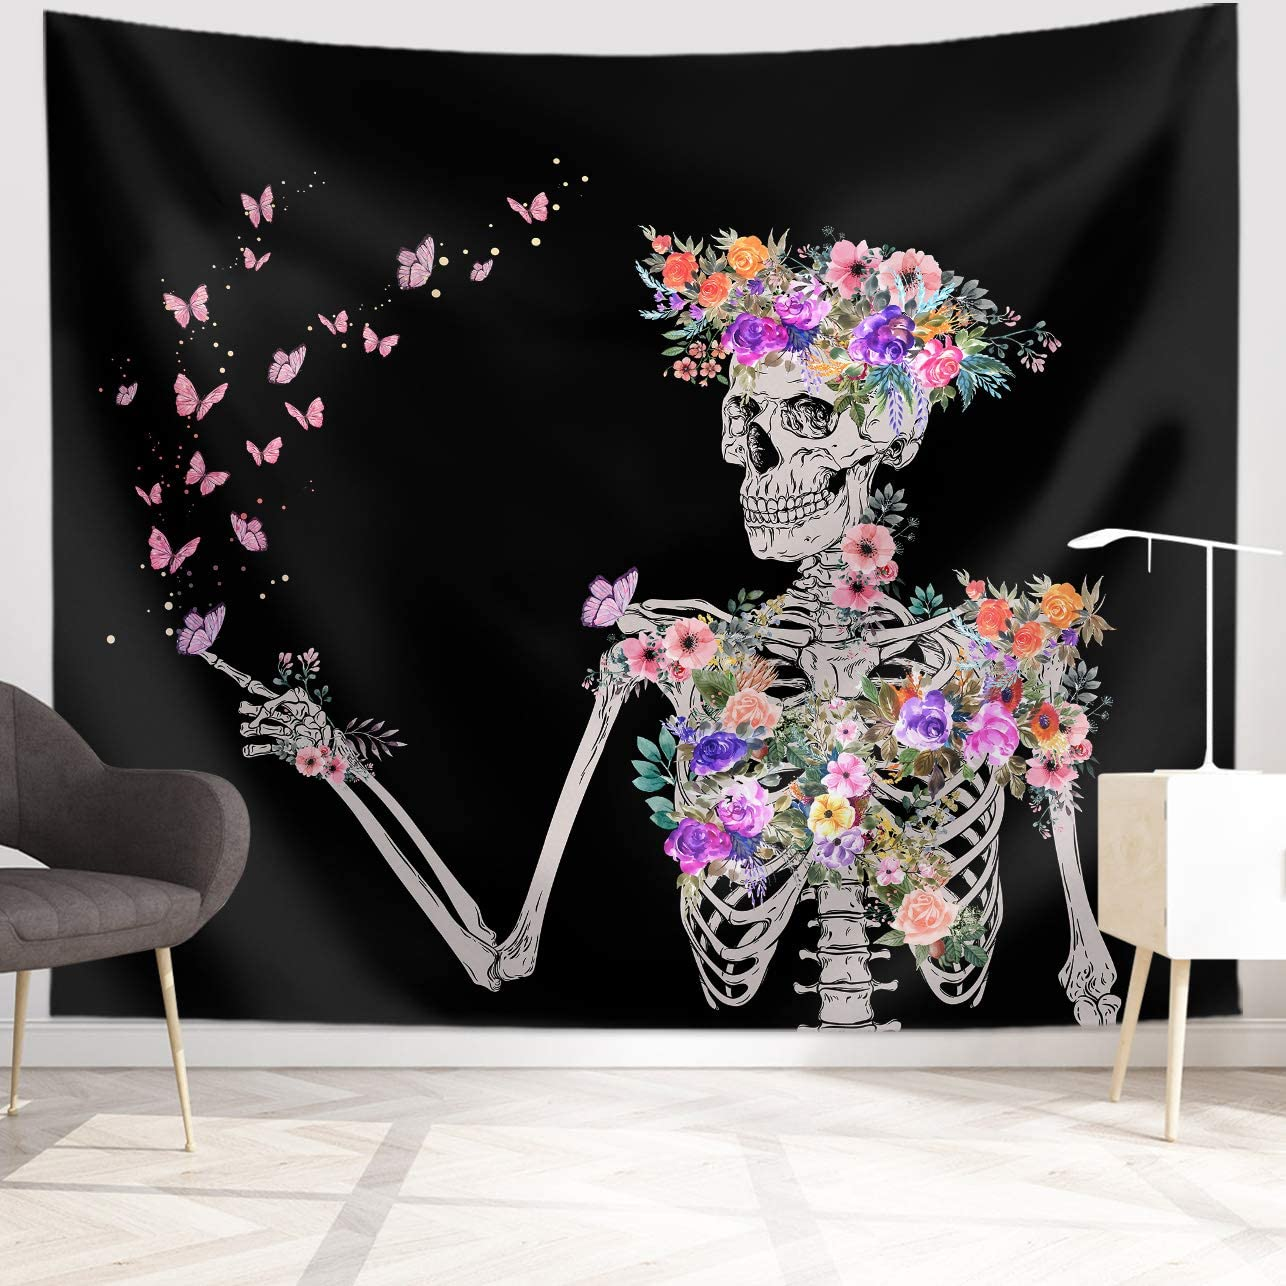 Skull Tapestry Minneapolis Mall Floral Butterfly Hanging Wate Max 49% OFF Wall